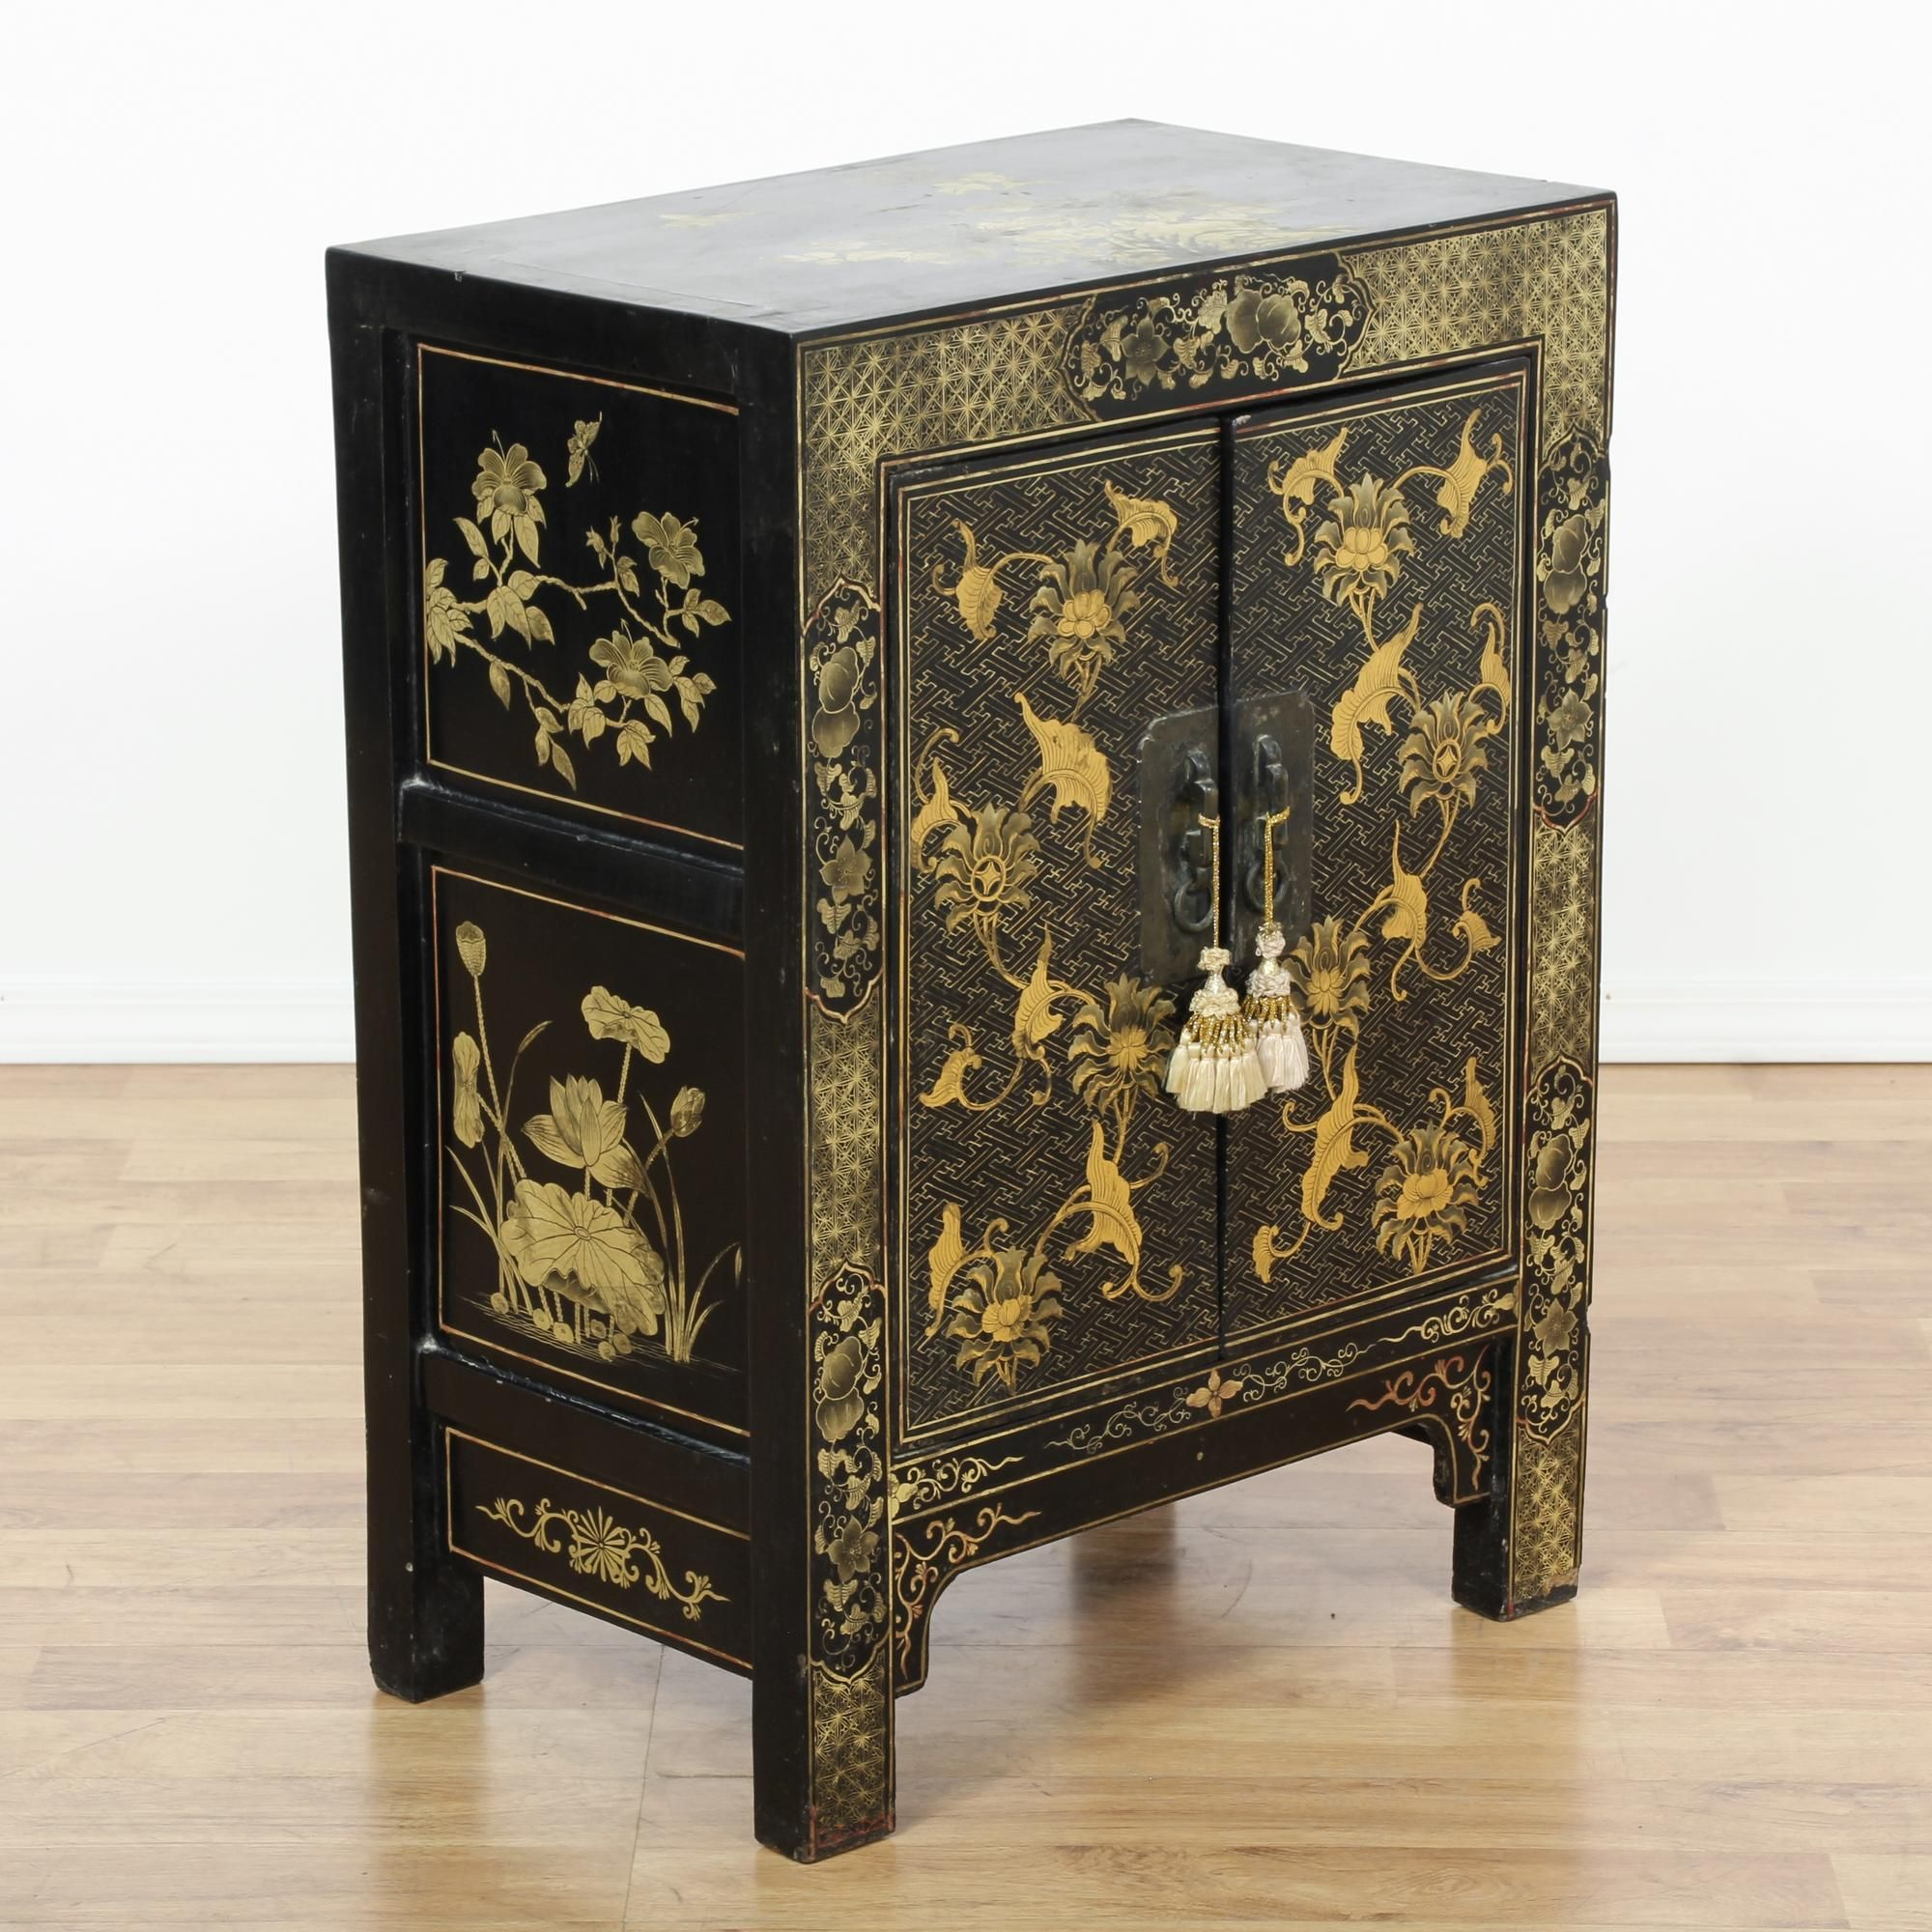 This Chinese cabinet is featured in a solid wood with a glossy ...